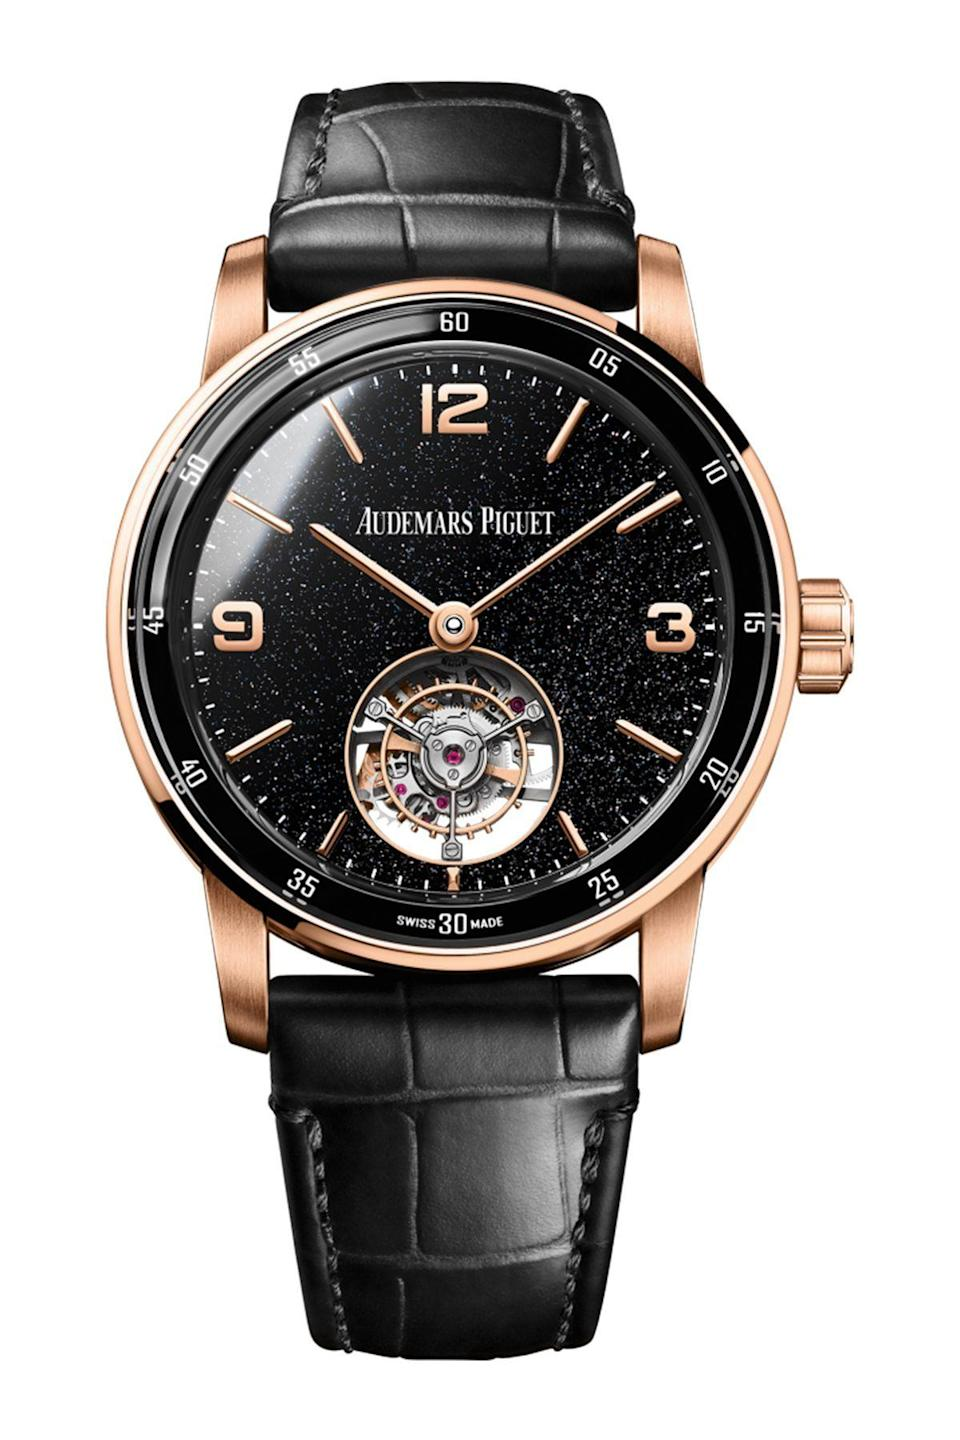 """<p><strong>Audemars Piguet</strong></p><p>audemarspiguet.com</p><p><a href=""""https://www.audemarspiguet.com/com/en/watch-collection/code-1159/26396OR.OO.D002CR.02.html"""" rel=""""nofollow noopener"""" target=""""_blank"""" data-ylk=""""slk:Shop Now"""" class=""""link rapid-noclick-resp"""">Shop Now</a></p><p>For more of a statement, the black band and watch face are elevated by the softness of the rose gold details of this timepiece. </p>"""